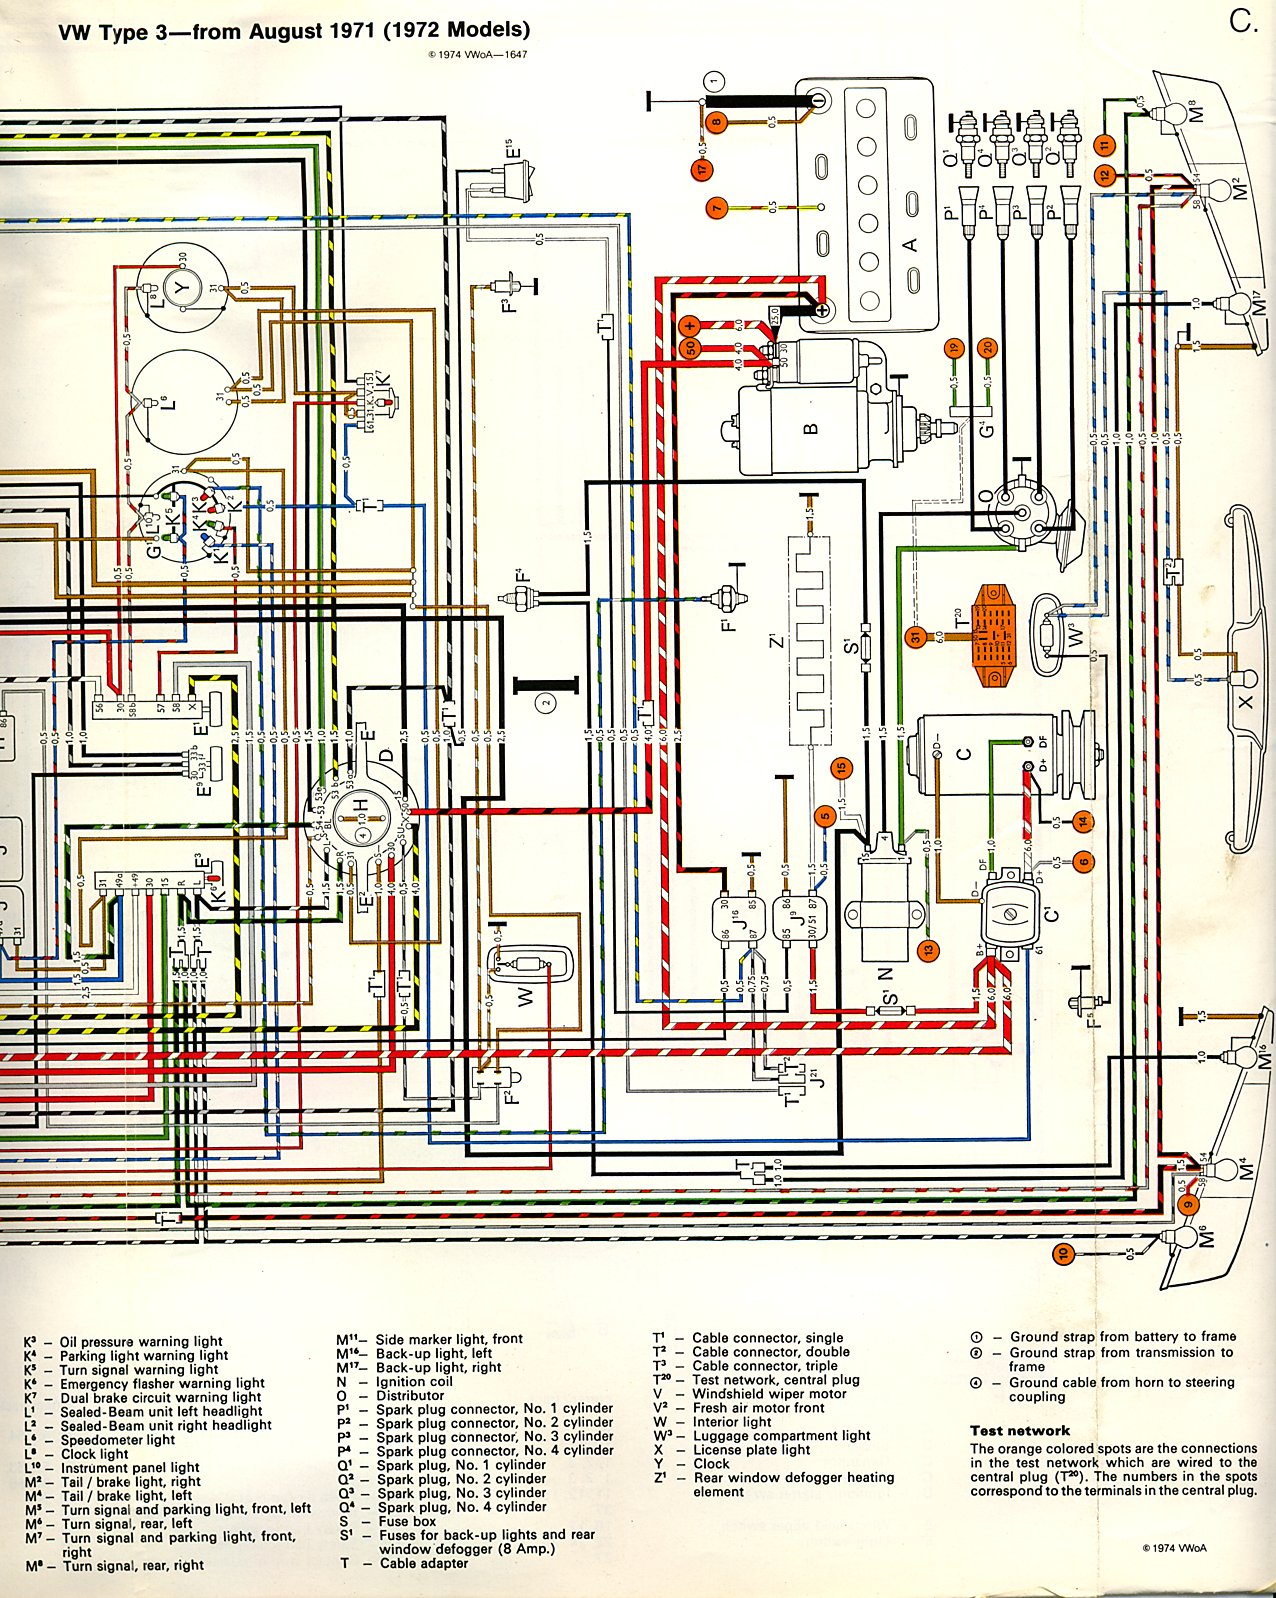 1973 Vw Type 3 Wiring Diagram Not Lossing 69 Volkswagen Bug Voltage Regulator Thesamba Com Diagrams Rh Dune Buggy Schematic